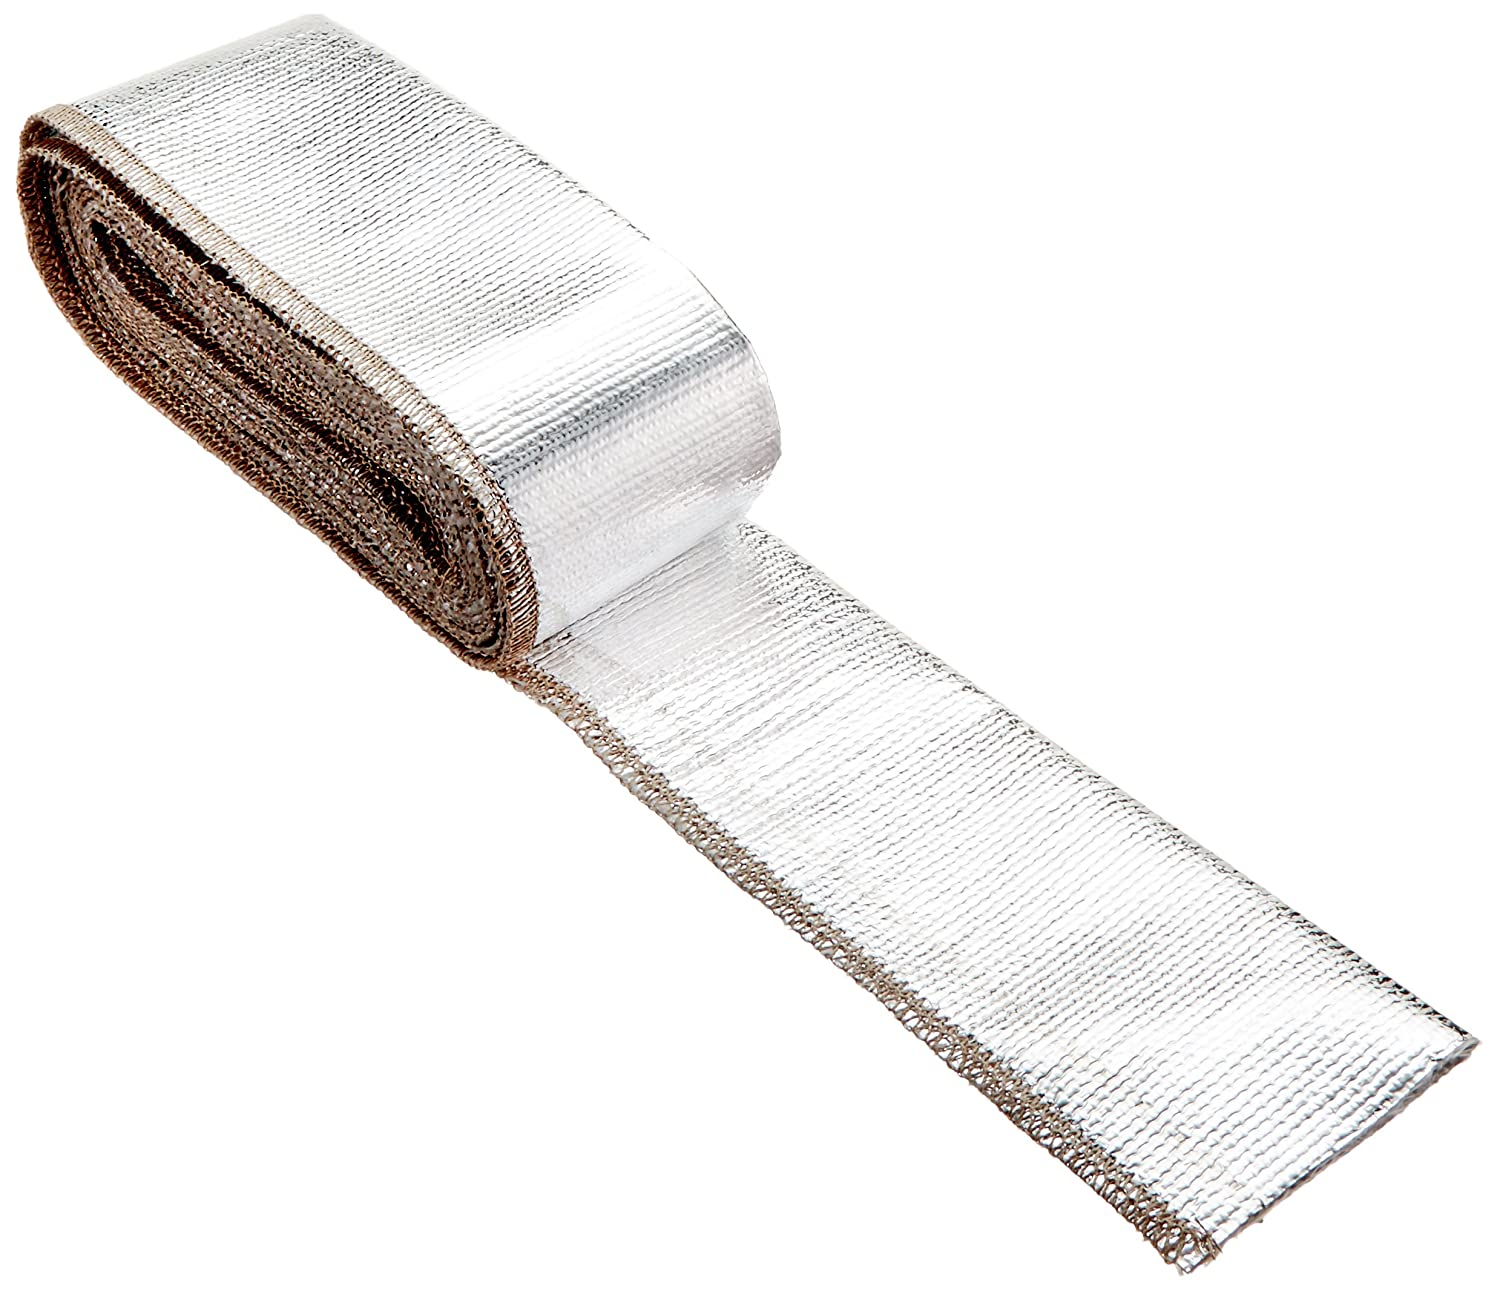 Thermo-Tec 14016 12', 1 1/2' I.D. Thermo-Sleeve 1 1/2 I.D. Thermo-Sleeve Thermo-Tec Products 24422